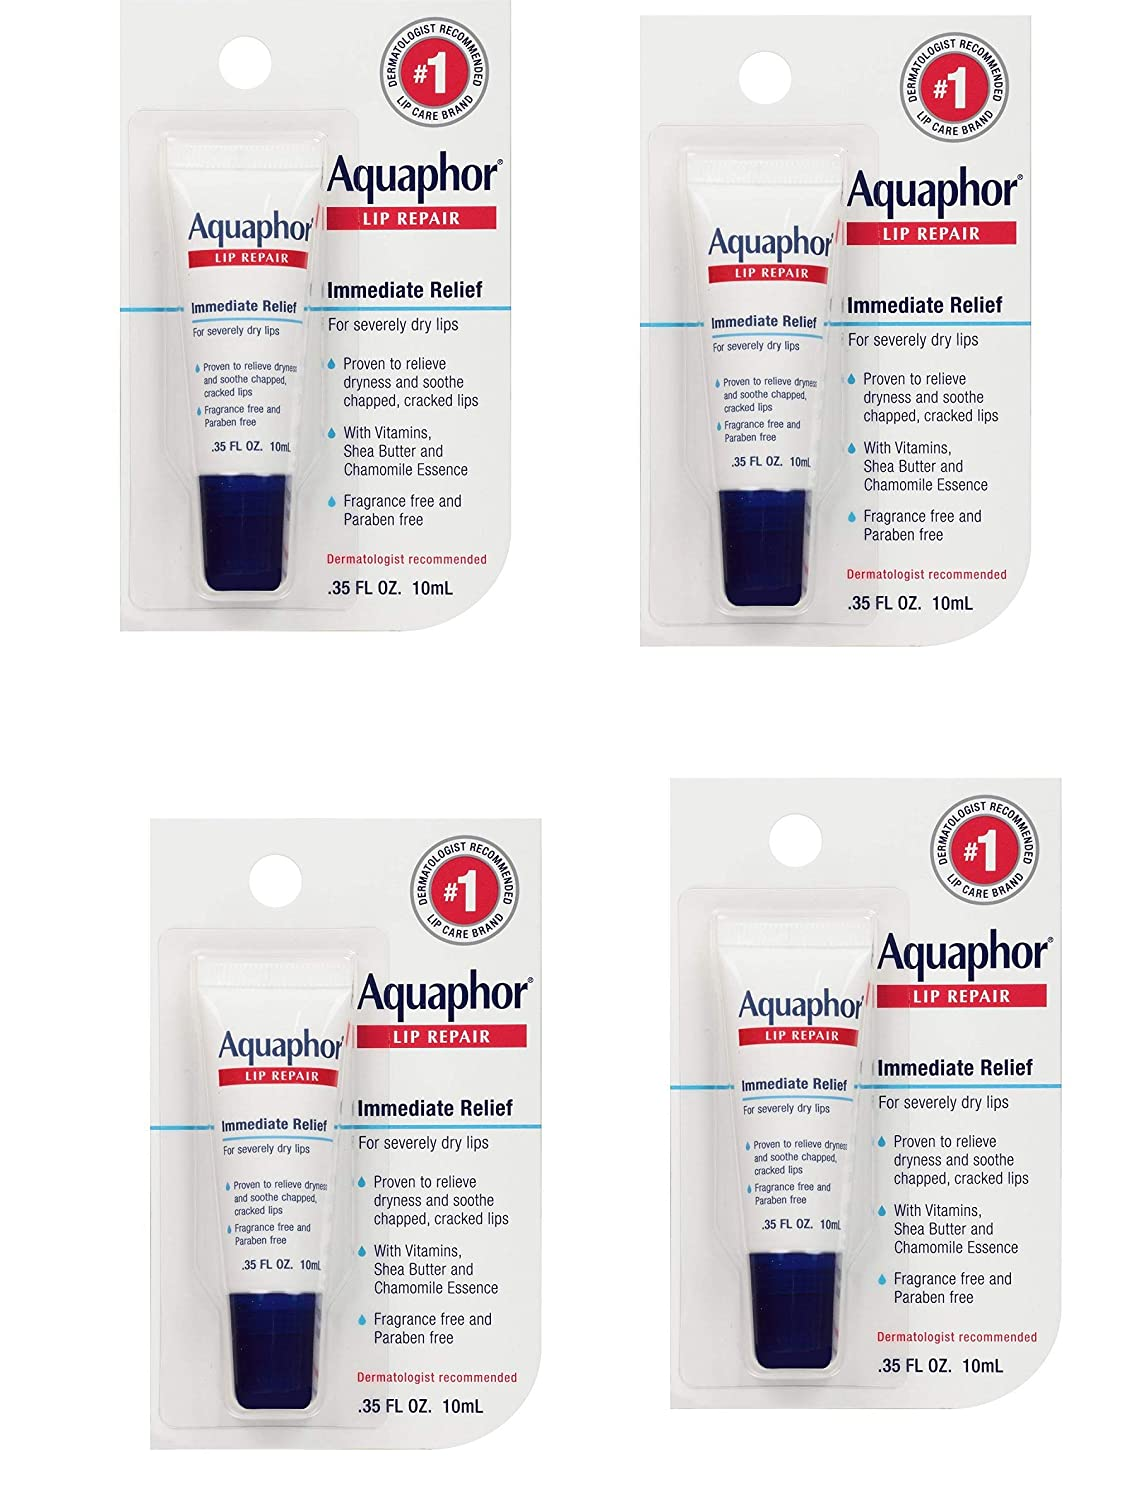 Aquaphor Lip Repair Ointment - Long-lasting Moisture to Soothe Dry Chapped Lips - .35 fl. oz Tube, 4 Pack